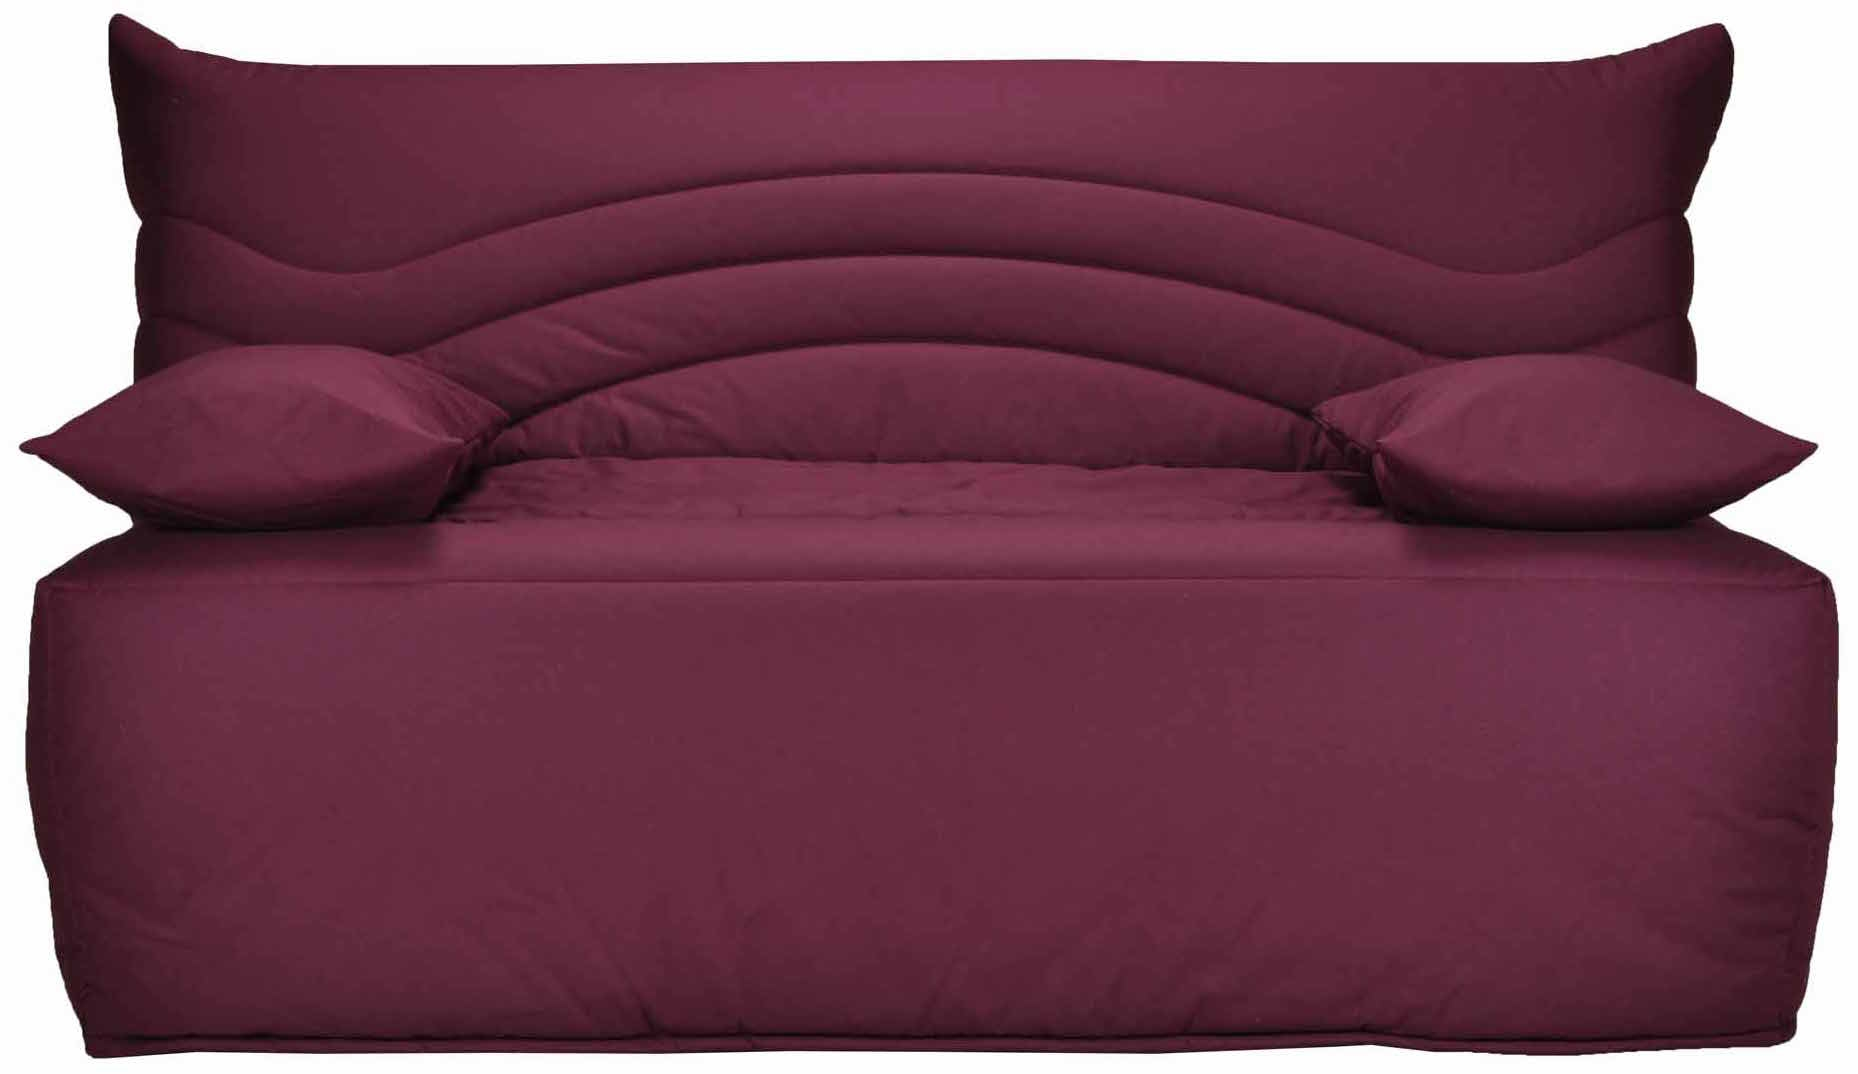 banquette bz prune 140 matelas sofaconfort 12 cm brioca. Black Bedroom Furniture Sets. Home Design Ideas